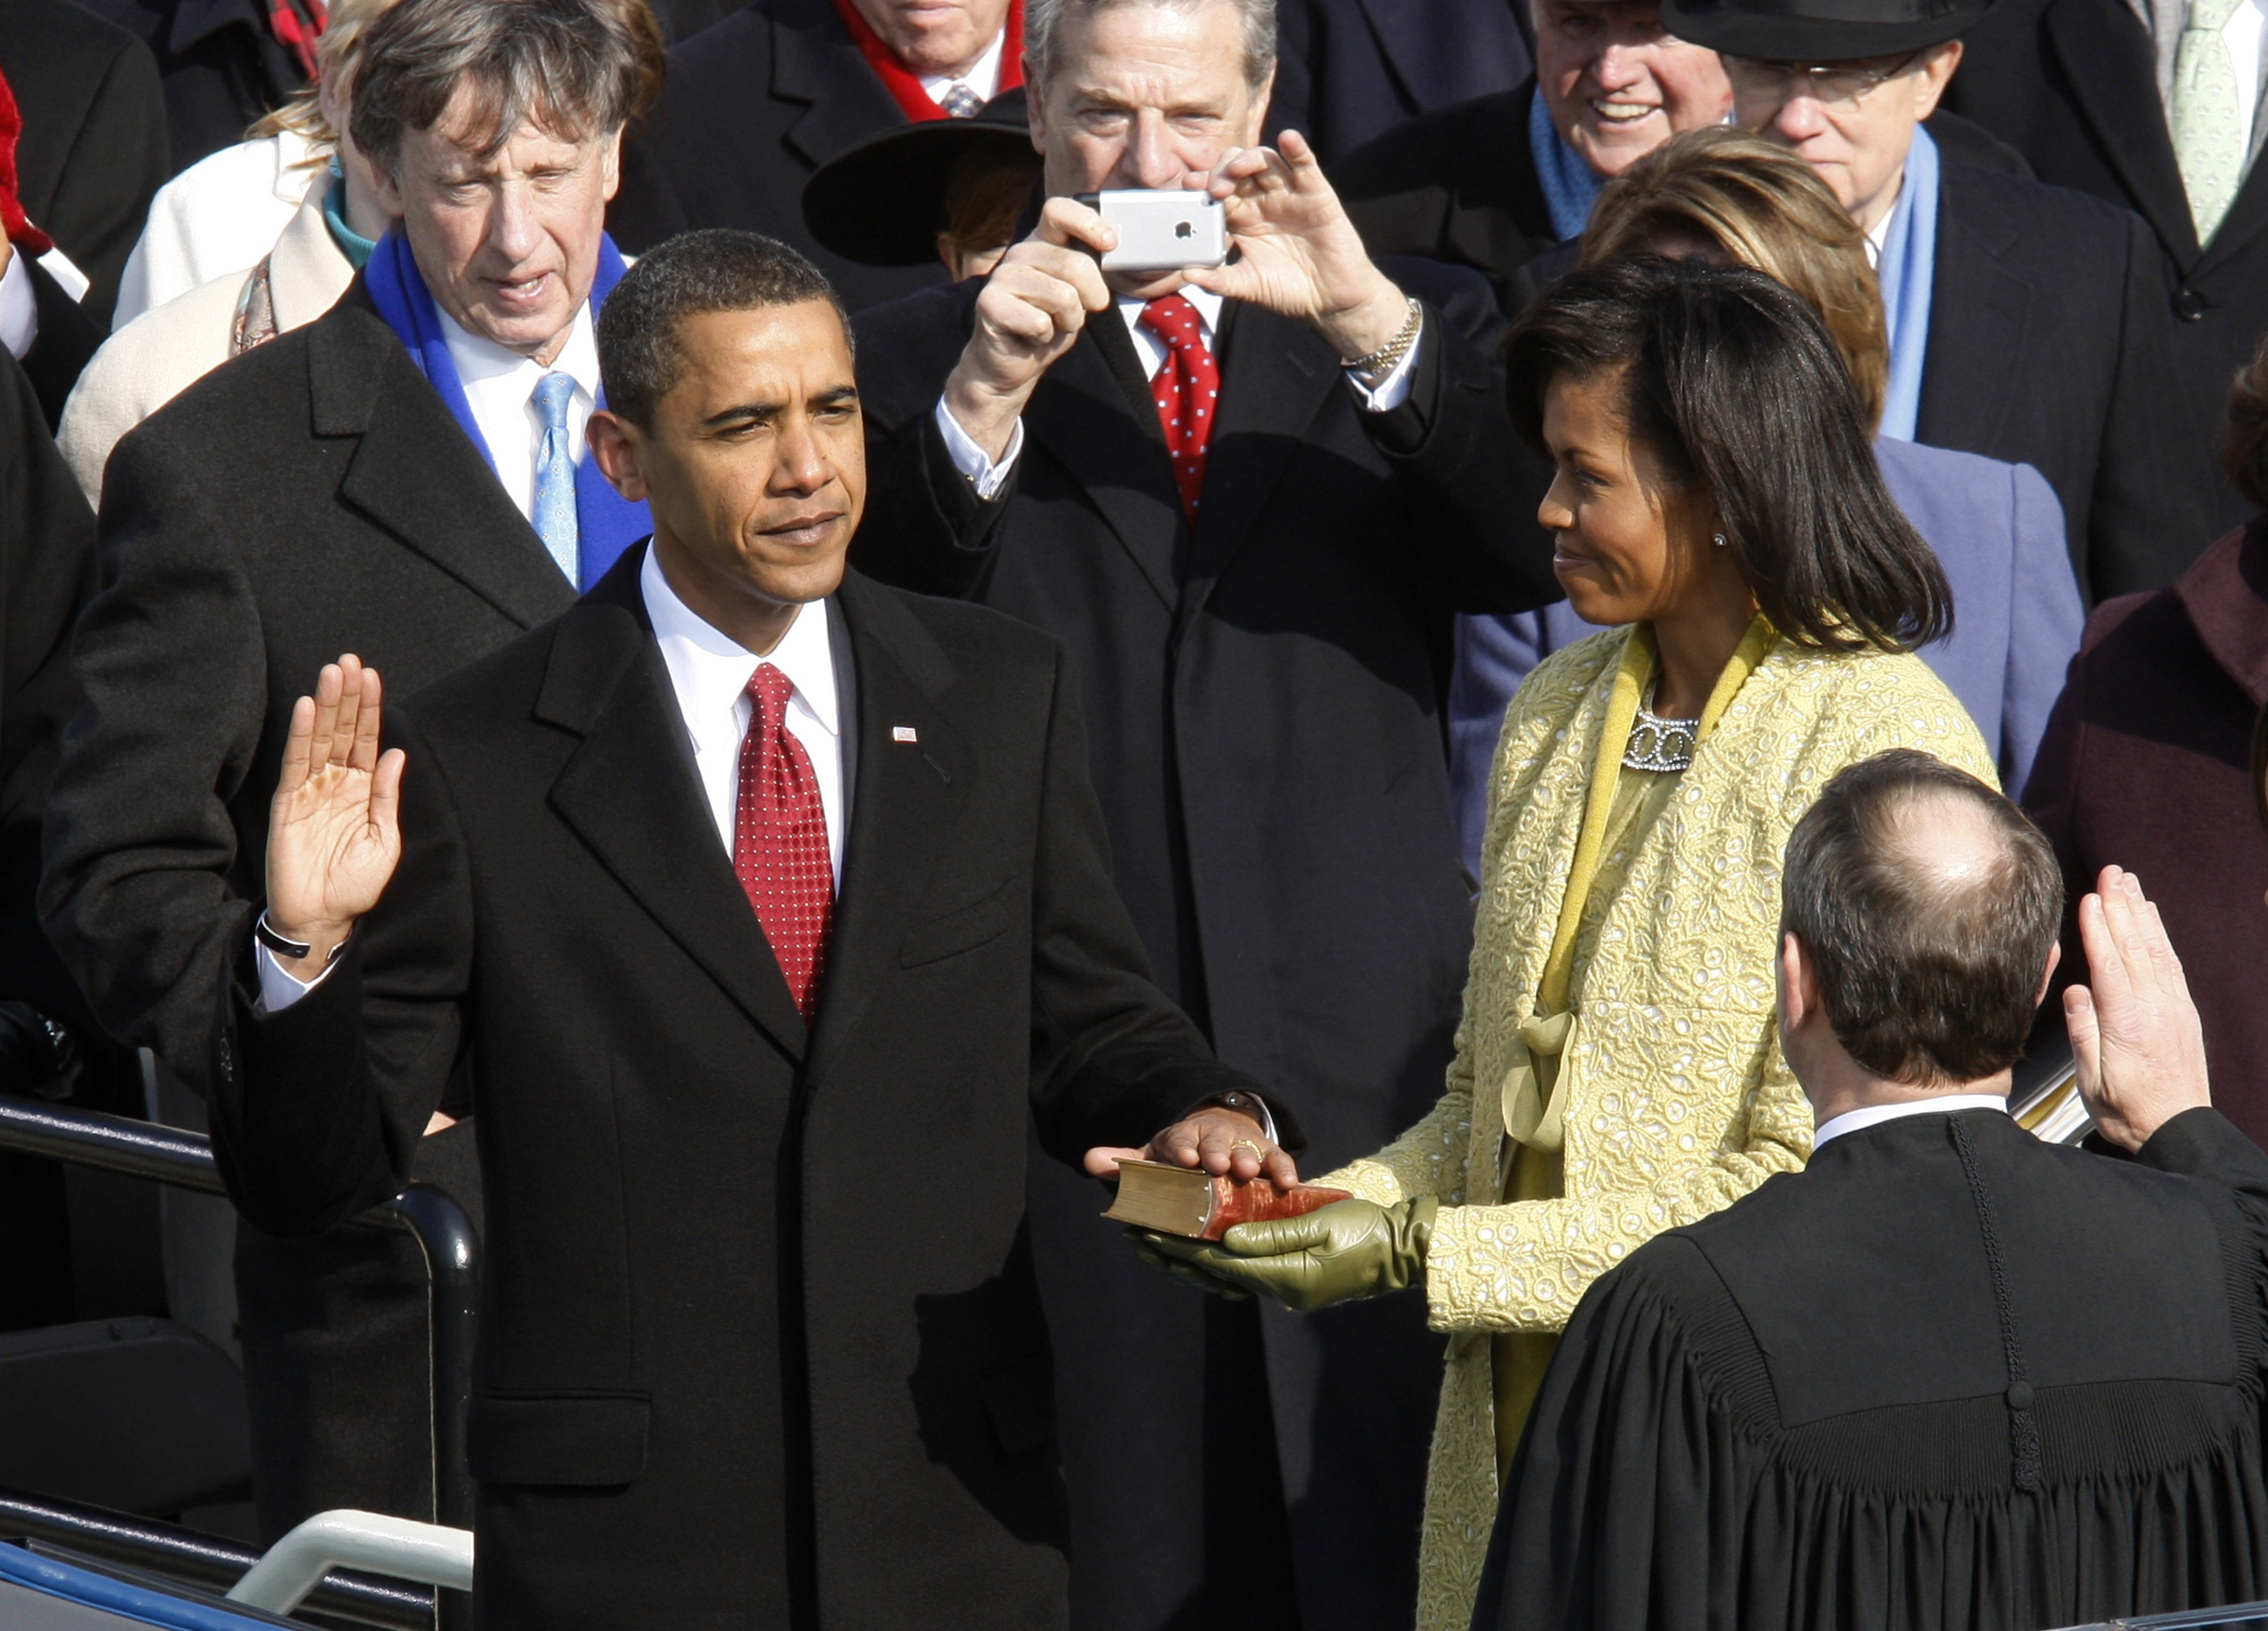 photo essay president barack obama acirc us opinion and commentary barack obama takes the oath of office as the 44th president of the united states chief justice john roberts and his wife michelle on jan 20 2009